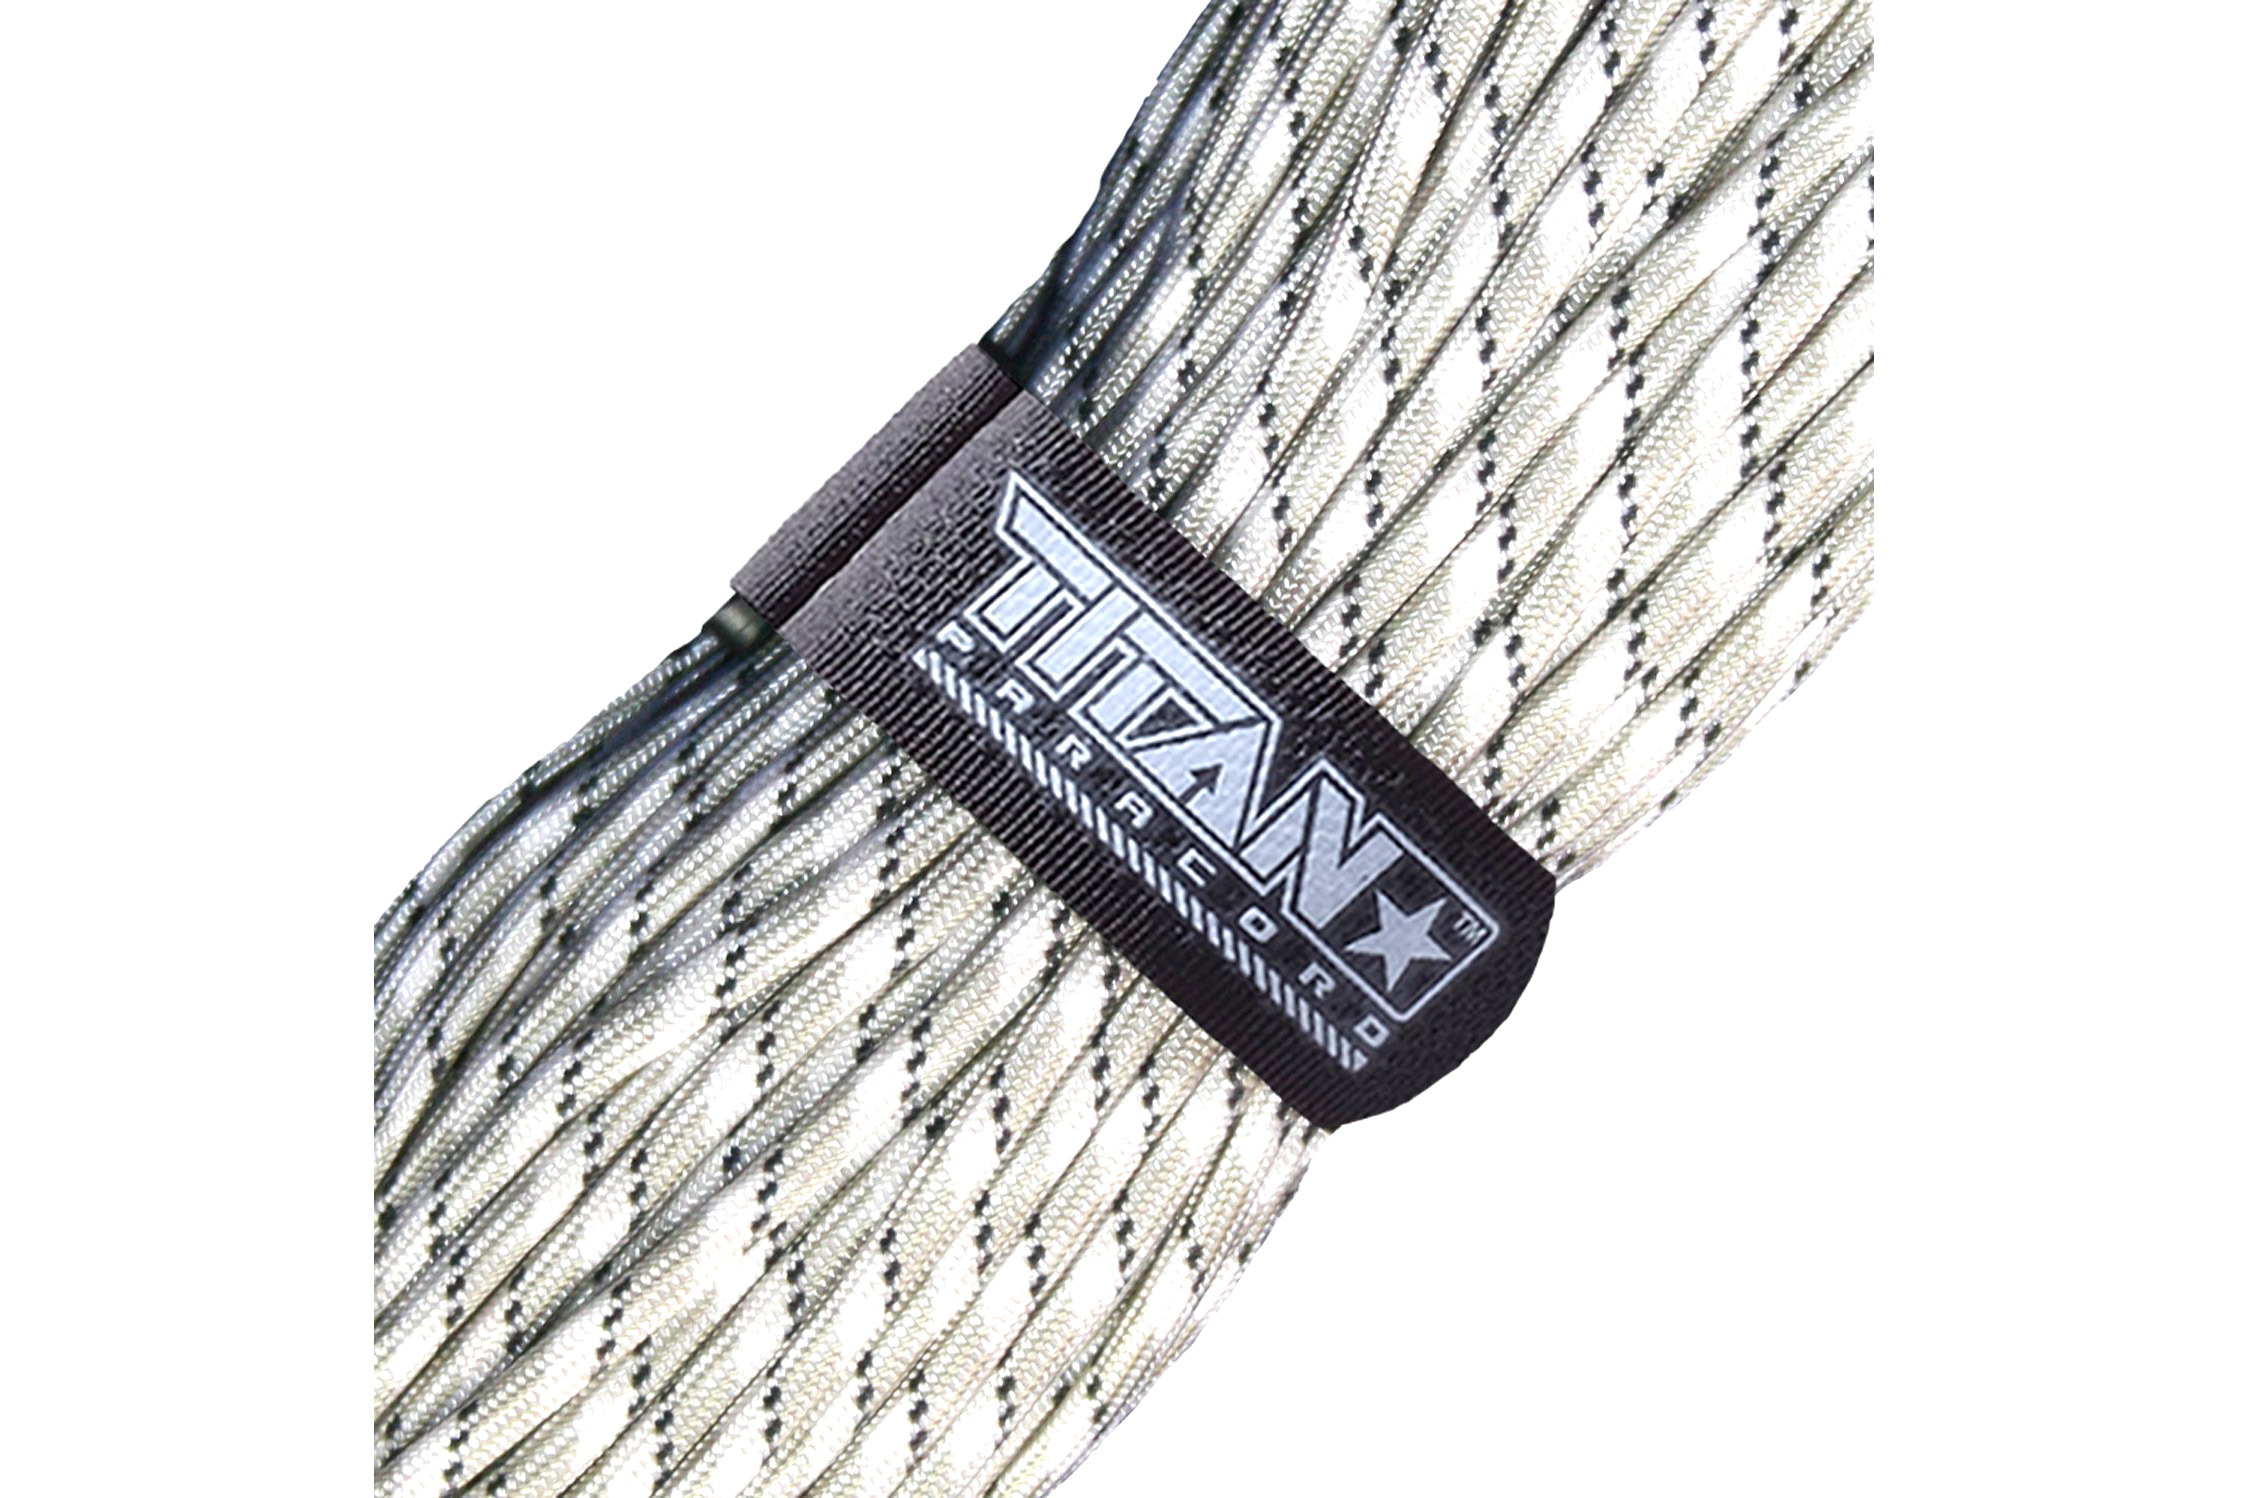 100 Foot Nylon Cord, 675lb breaking strength - 5 stars - $18 (Prime)